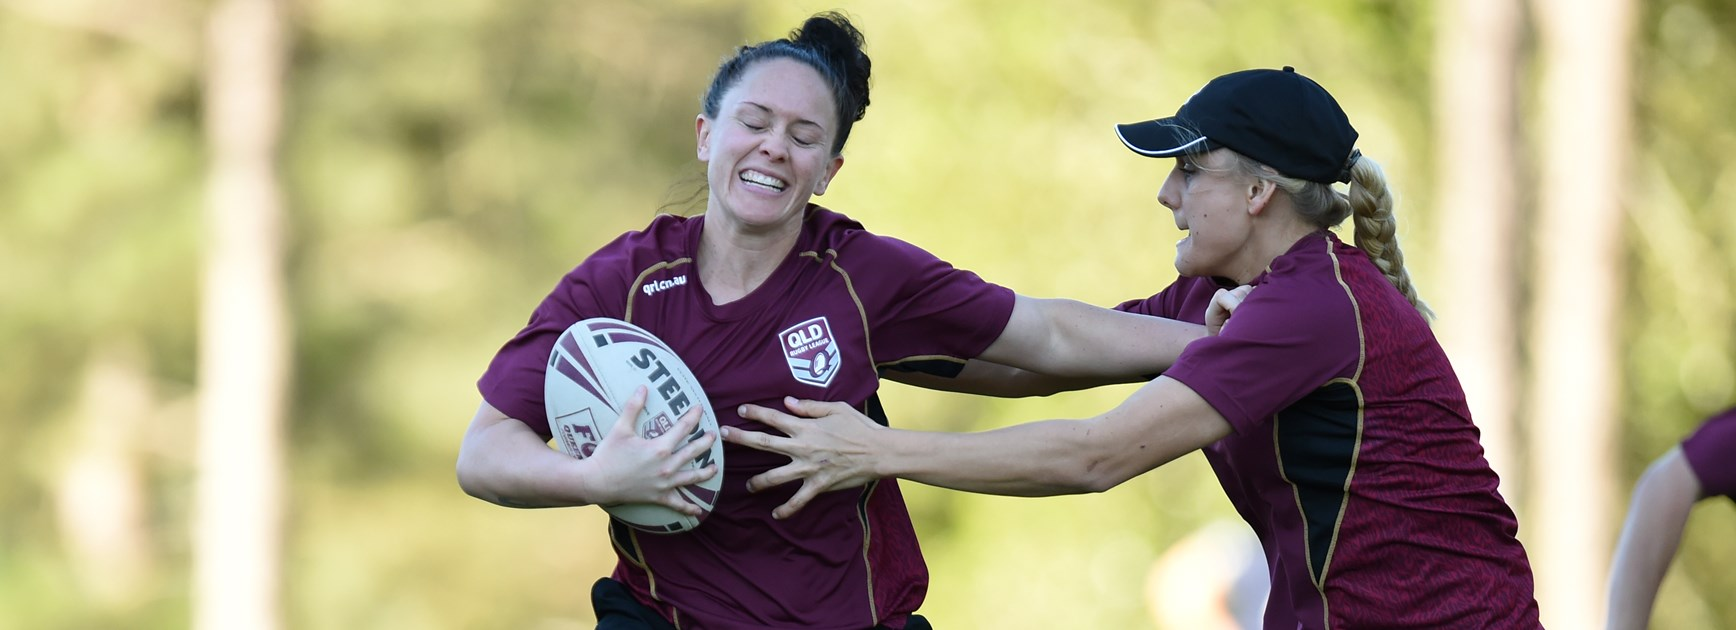 Maroons player Brittany Breayley.